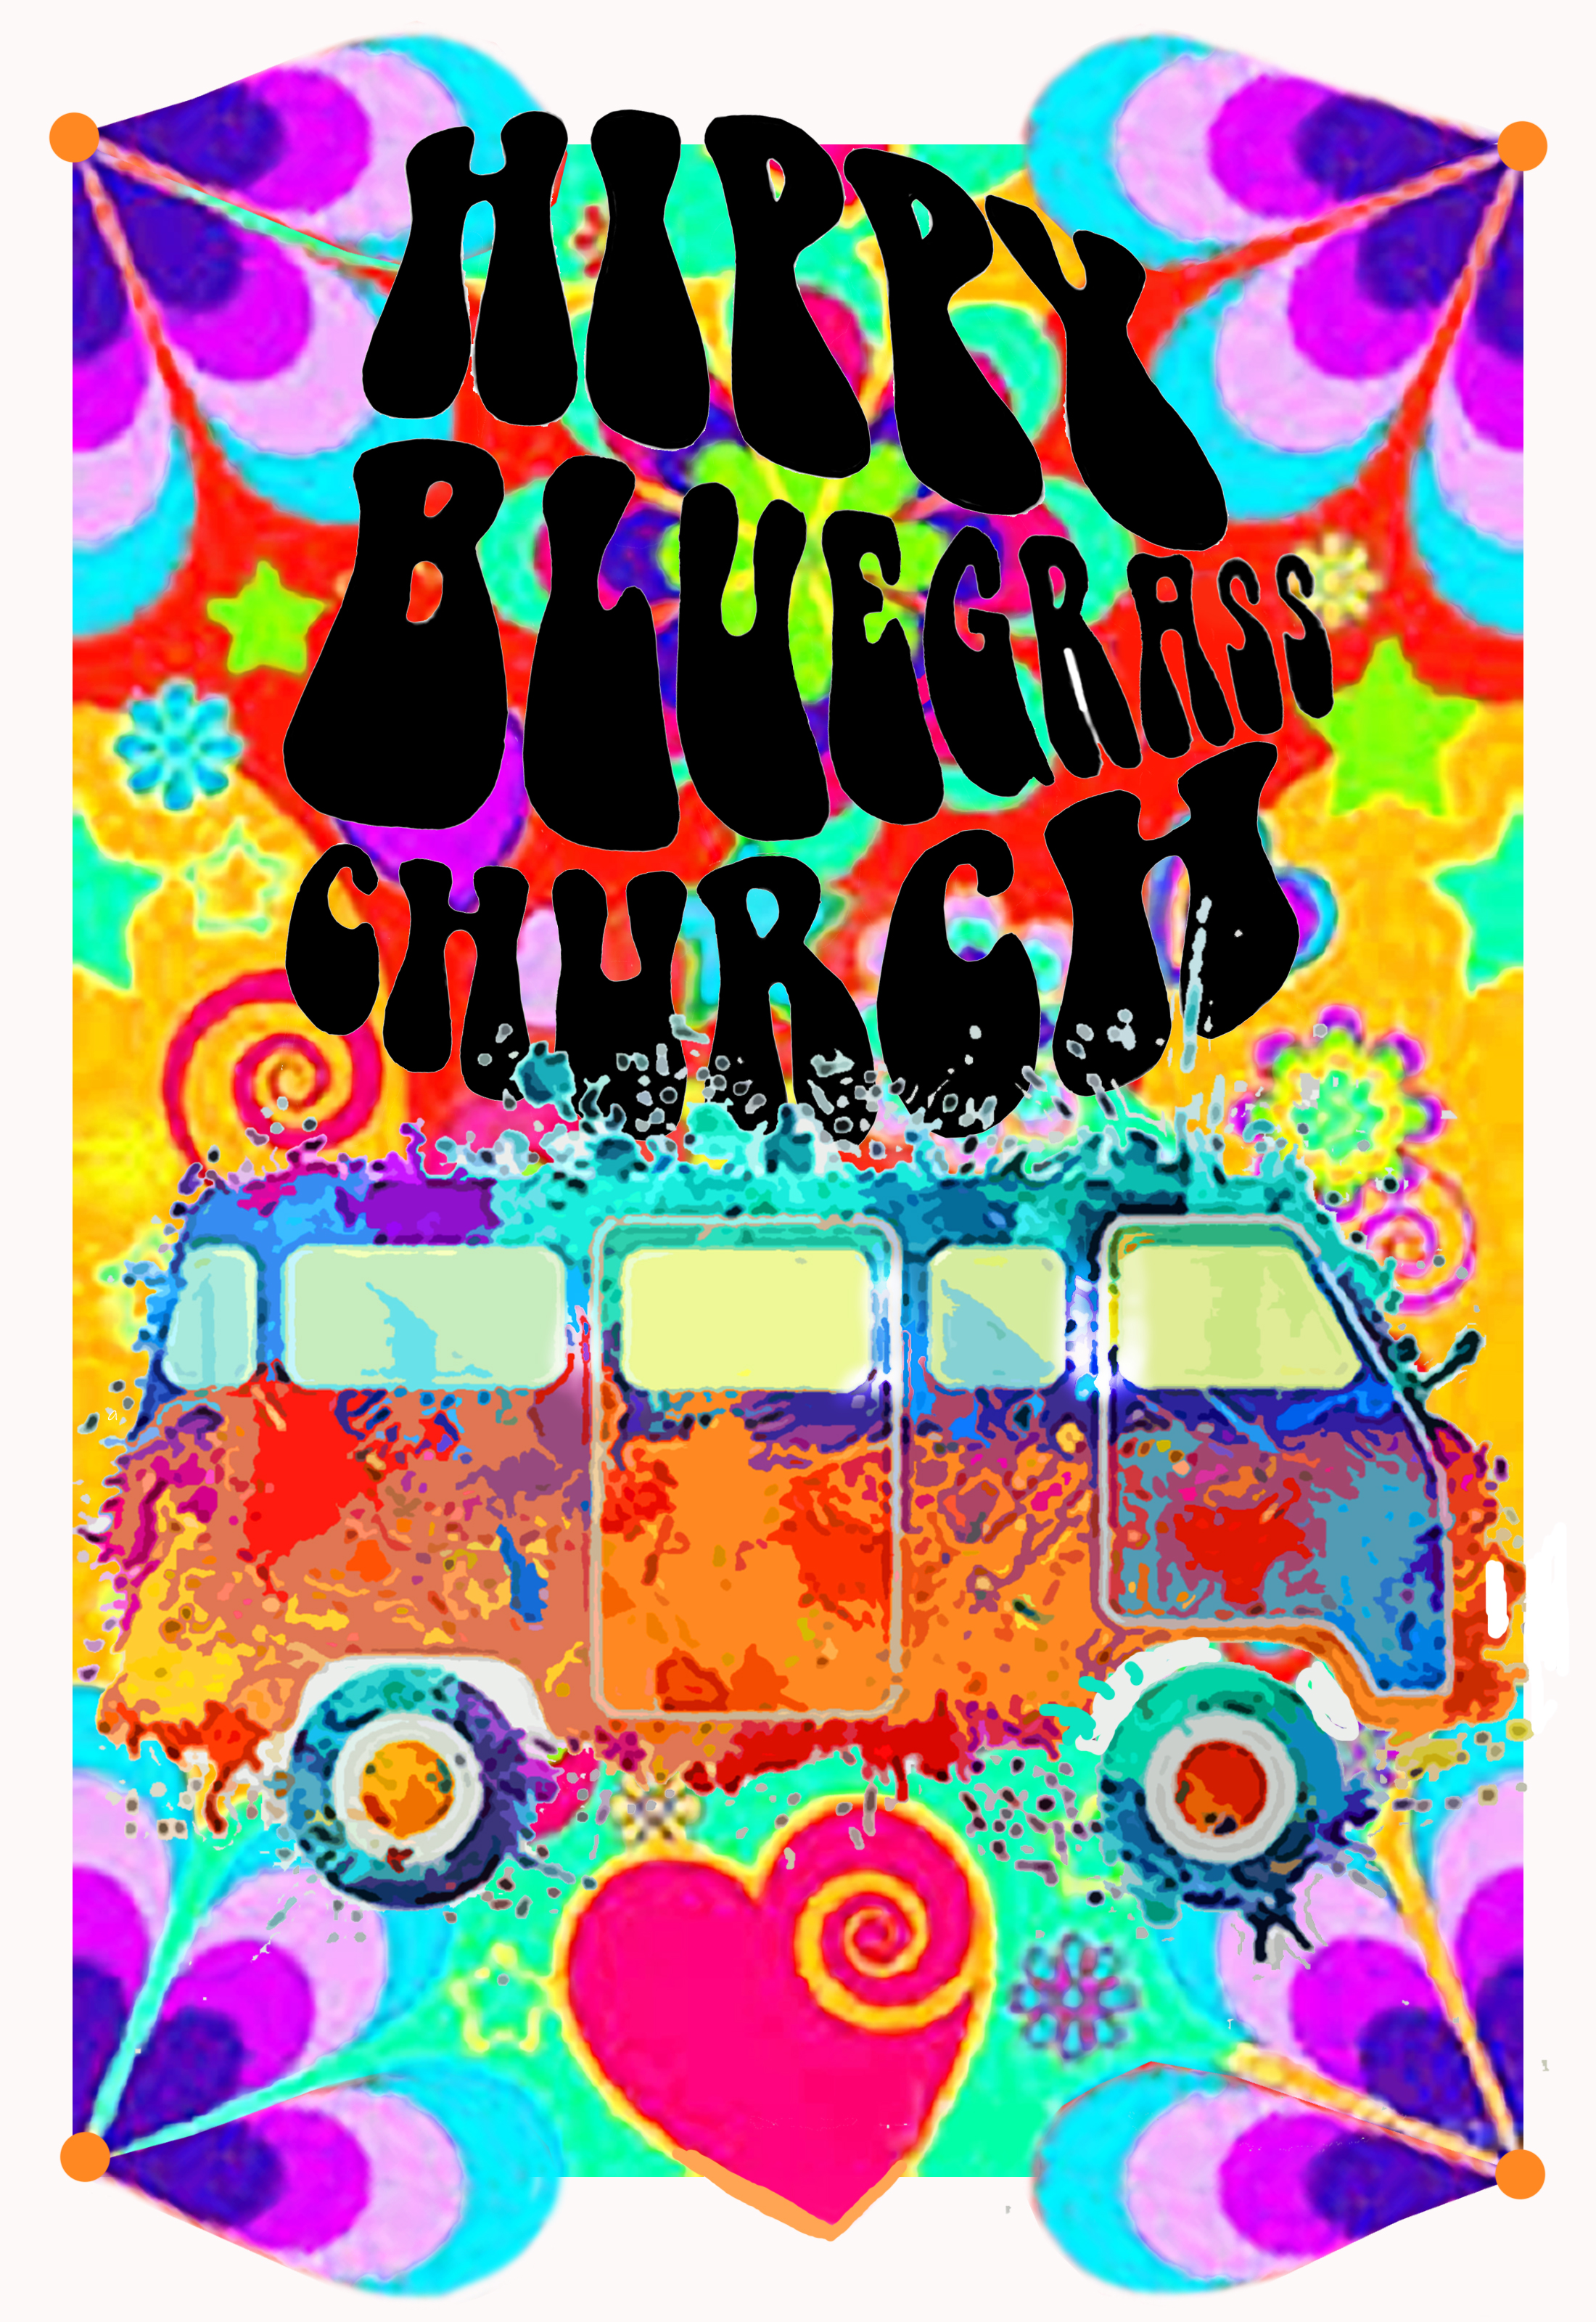 Hippie Bluegrass Church poster 3 no text.jpg